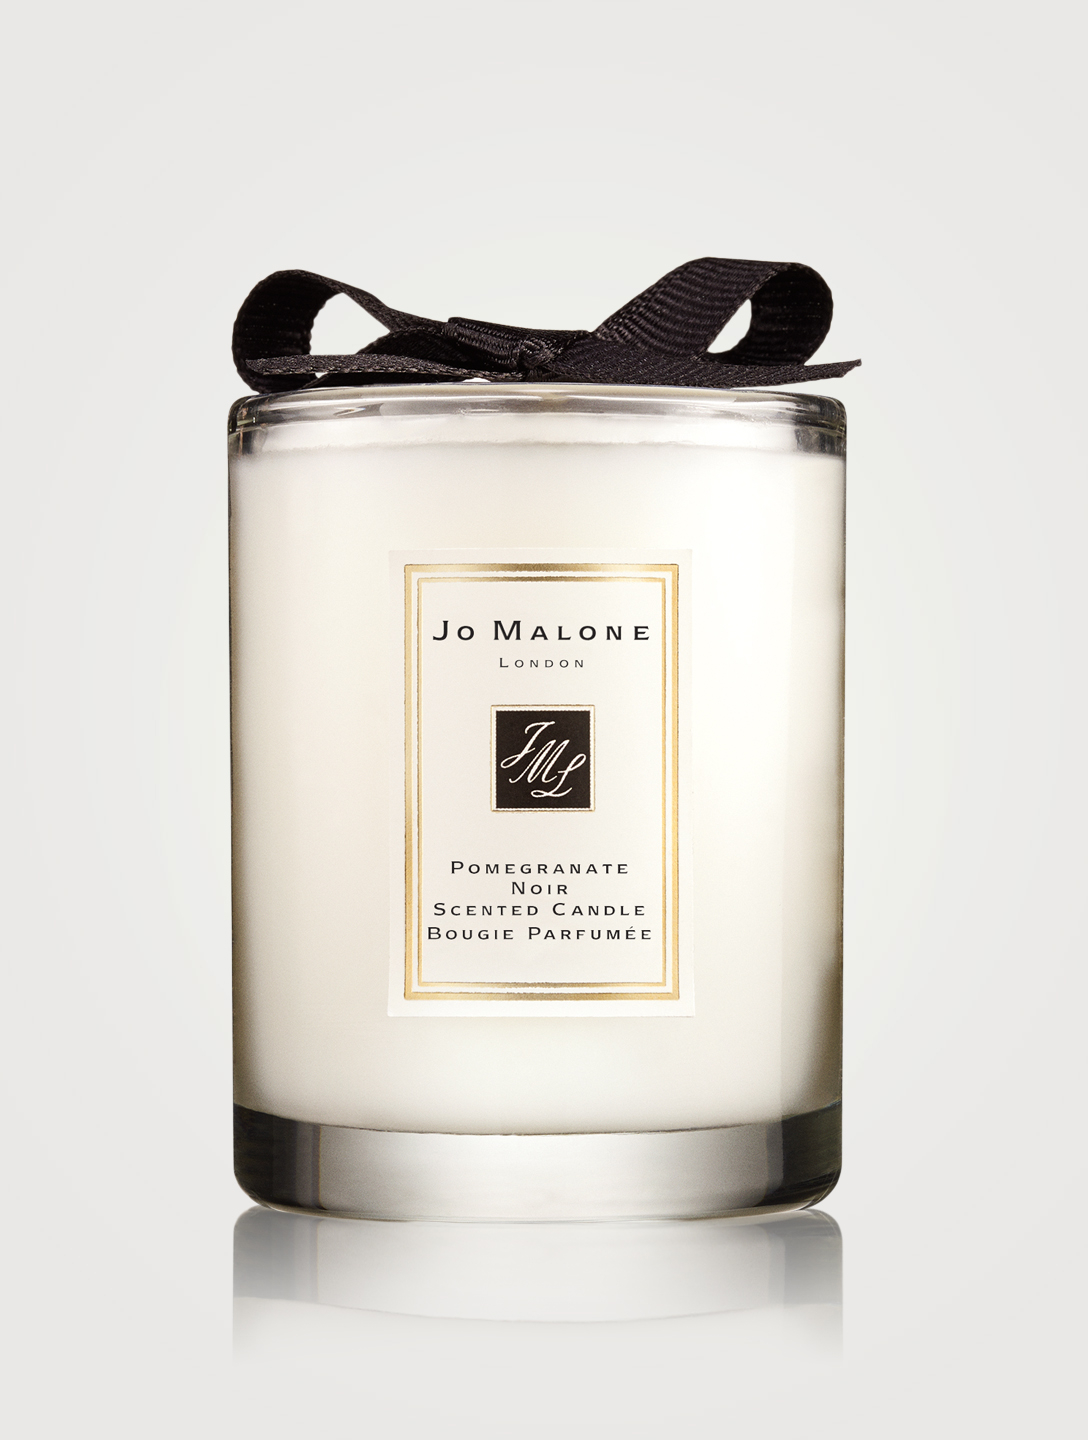 JO MALONE LONDON Pomegranate Noir Travel Candle Beauty